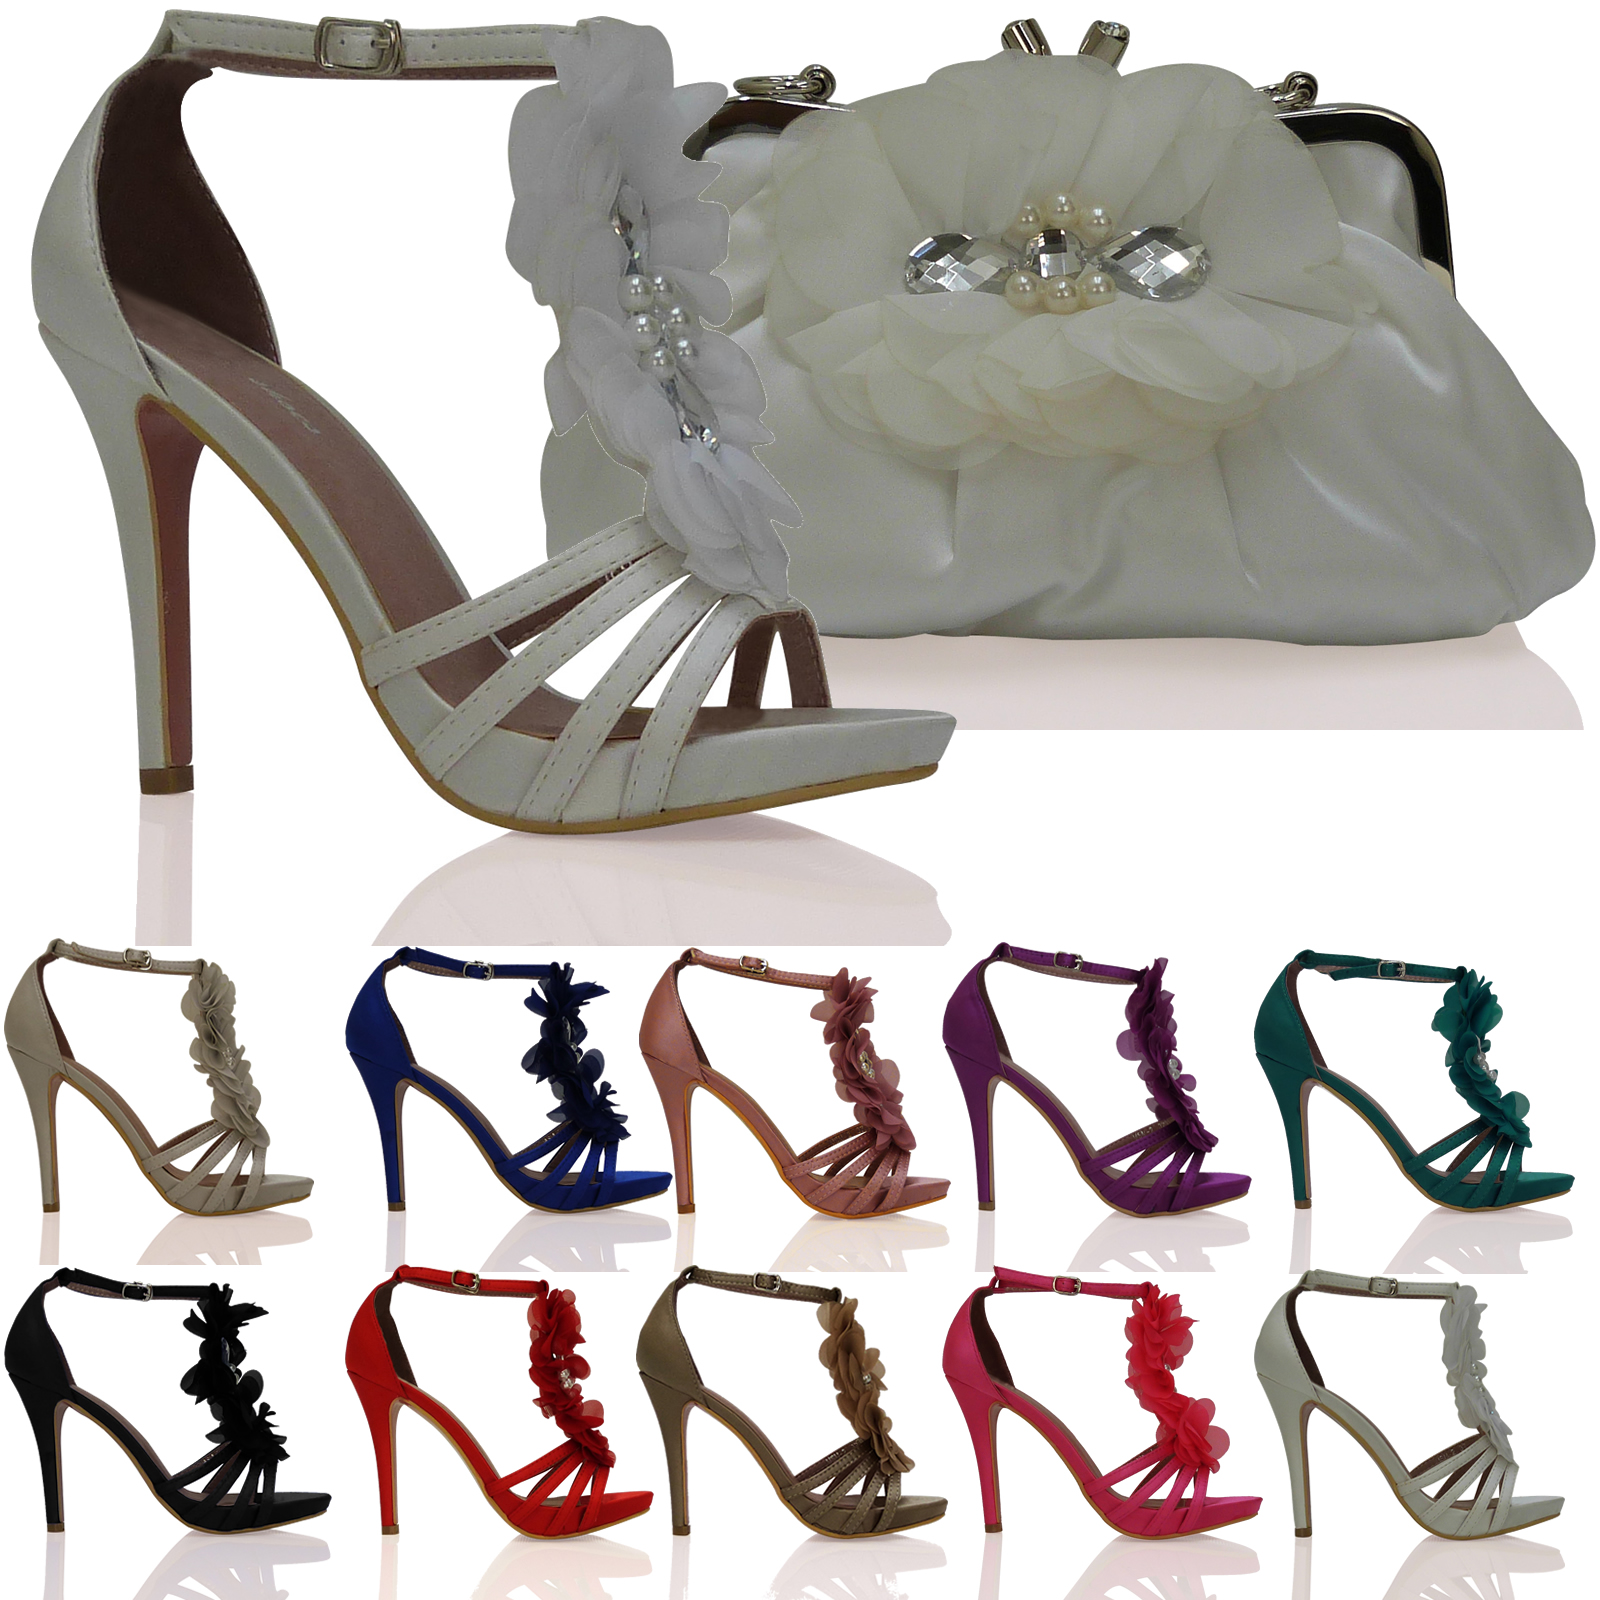 NEW WOMENS LADIES WEDDING PROM PARTY EVENING HIGH HEEL STRAPPY SHOES PUMP SIZE